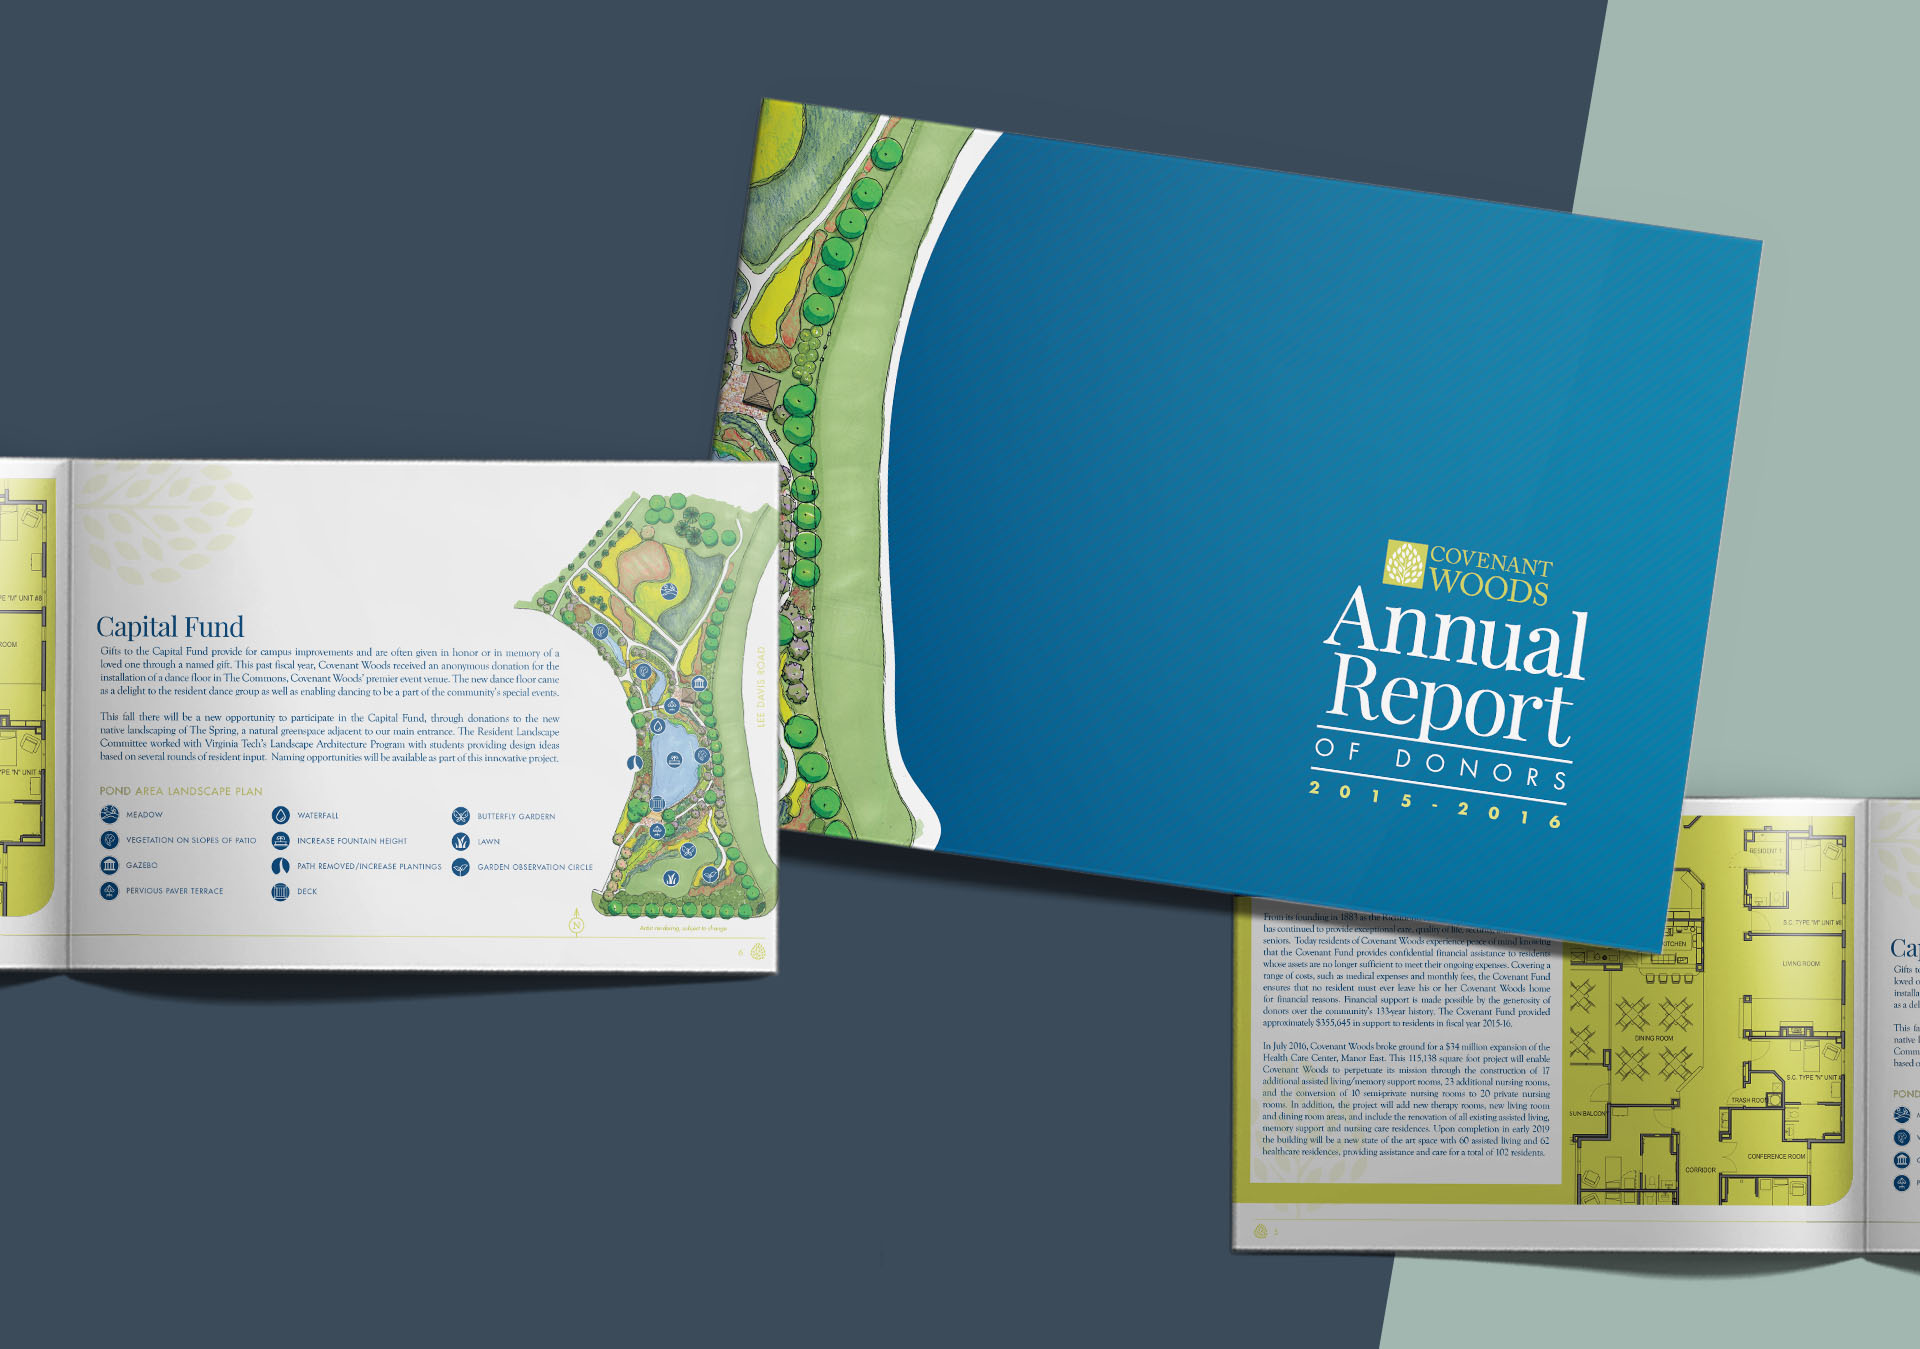 annual report spreads for Covenant Woods